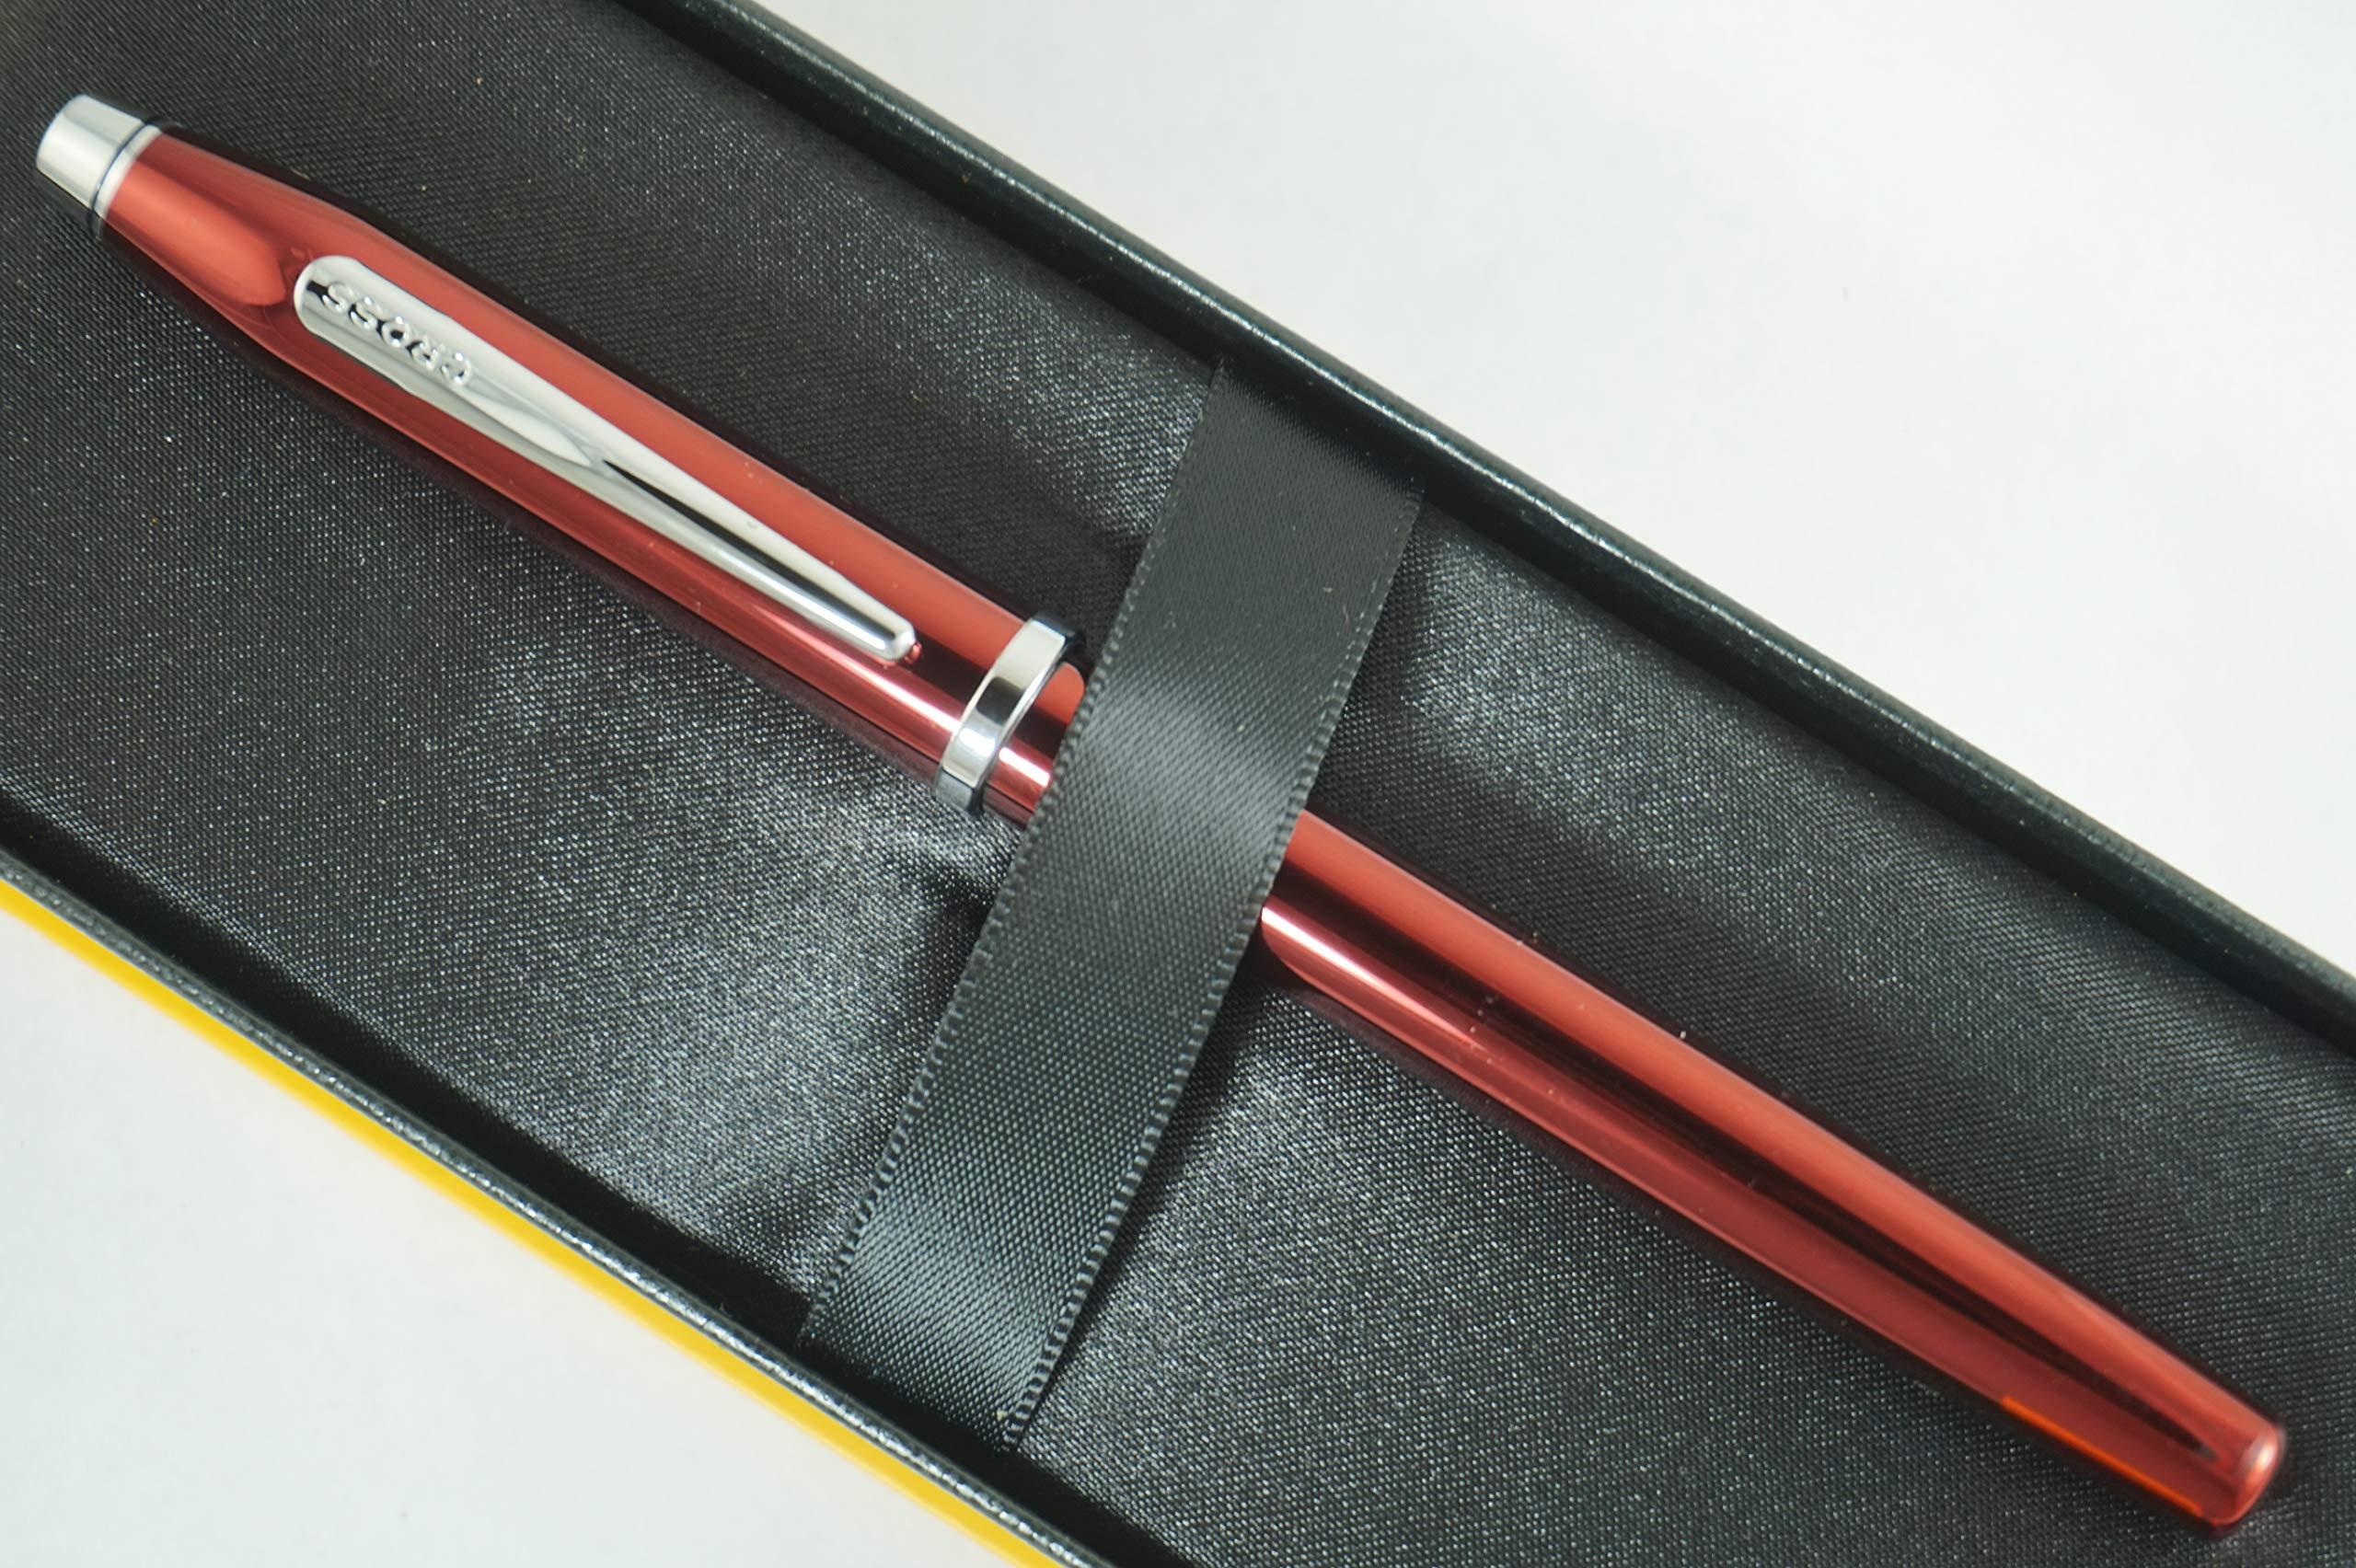 Cross Century II Limited Series, Pearlescent Metallic Ruby Red selectip Gel Ink Rollerball Pen by A.T. Cross (Image #1)